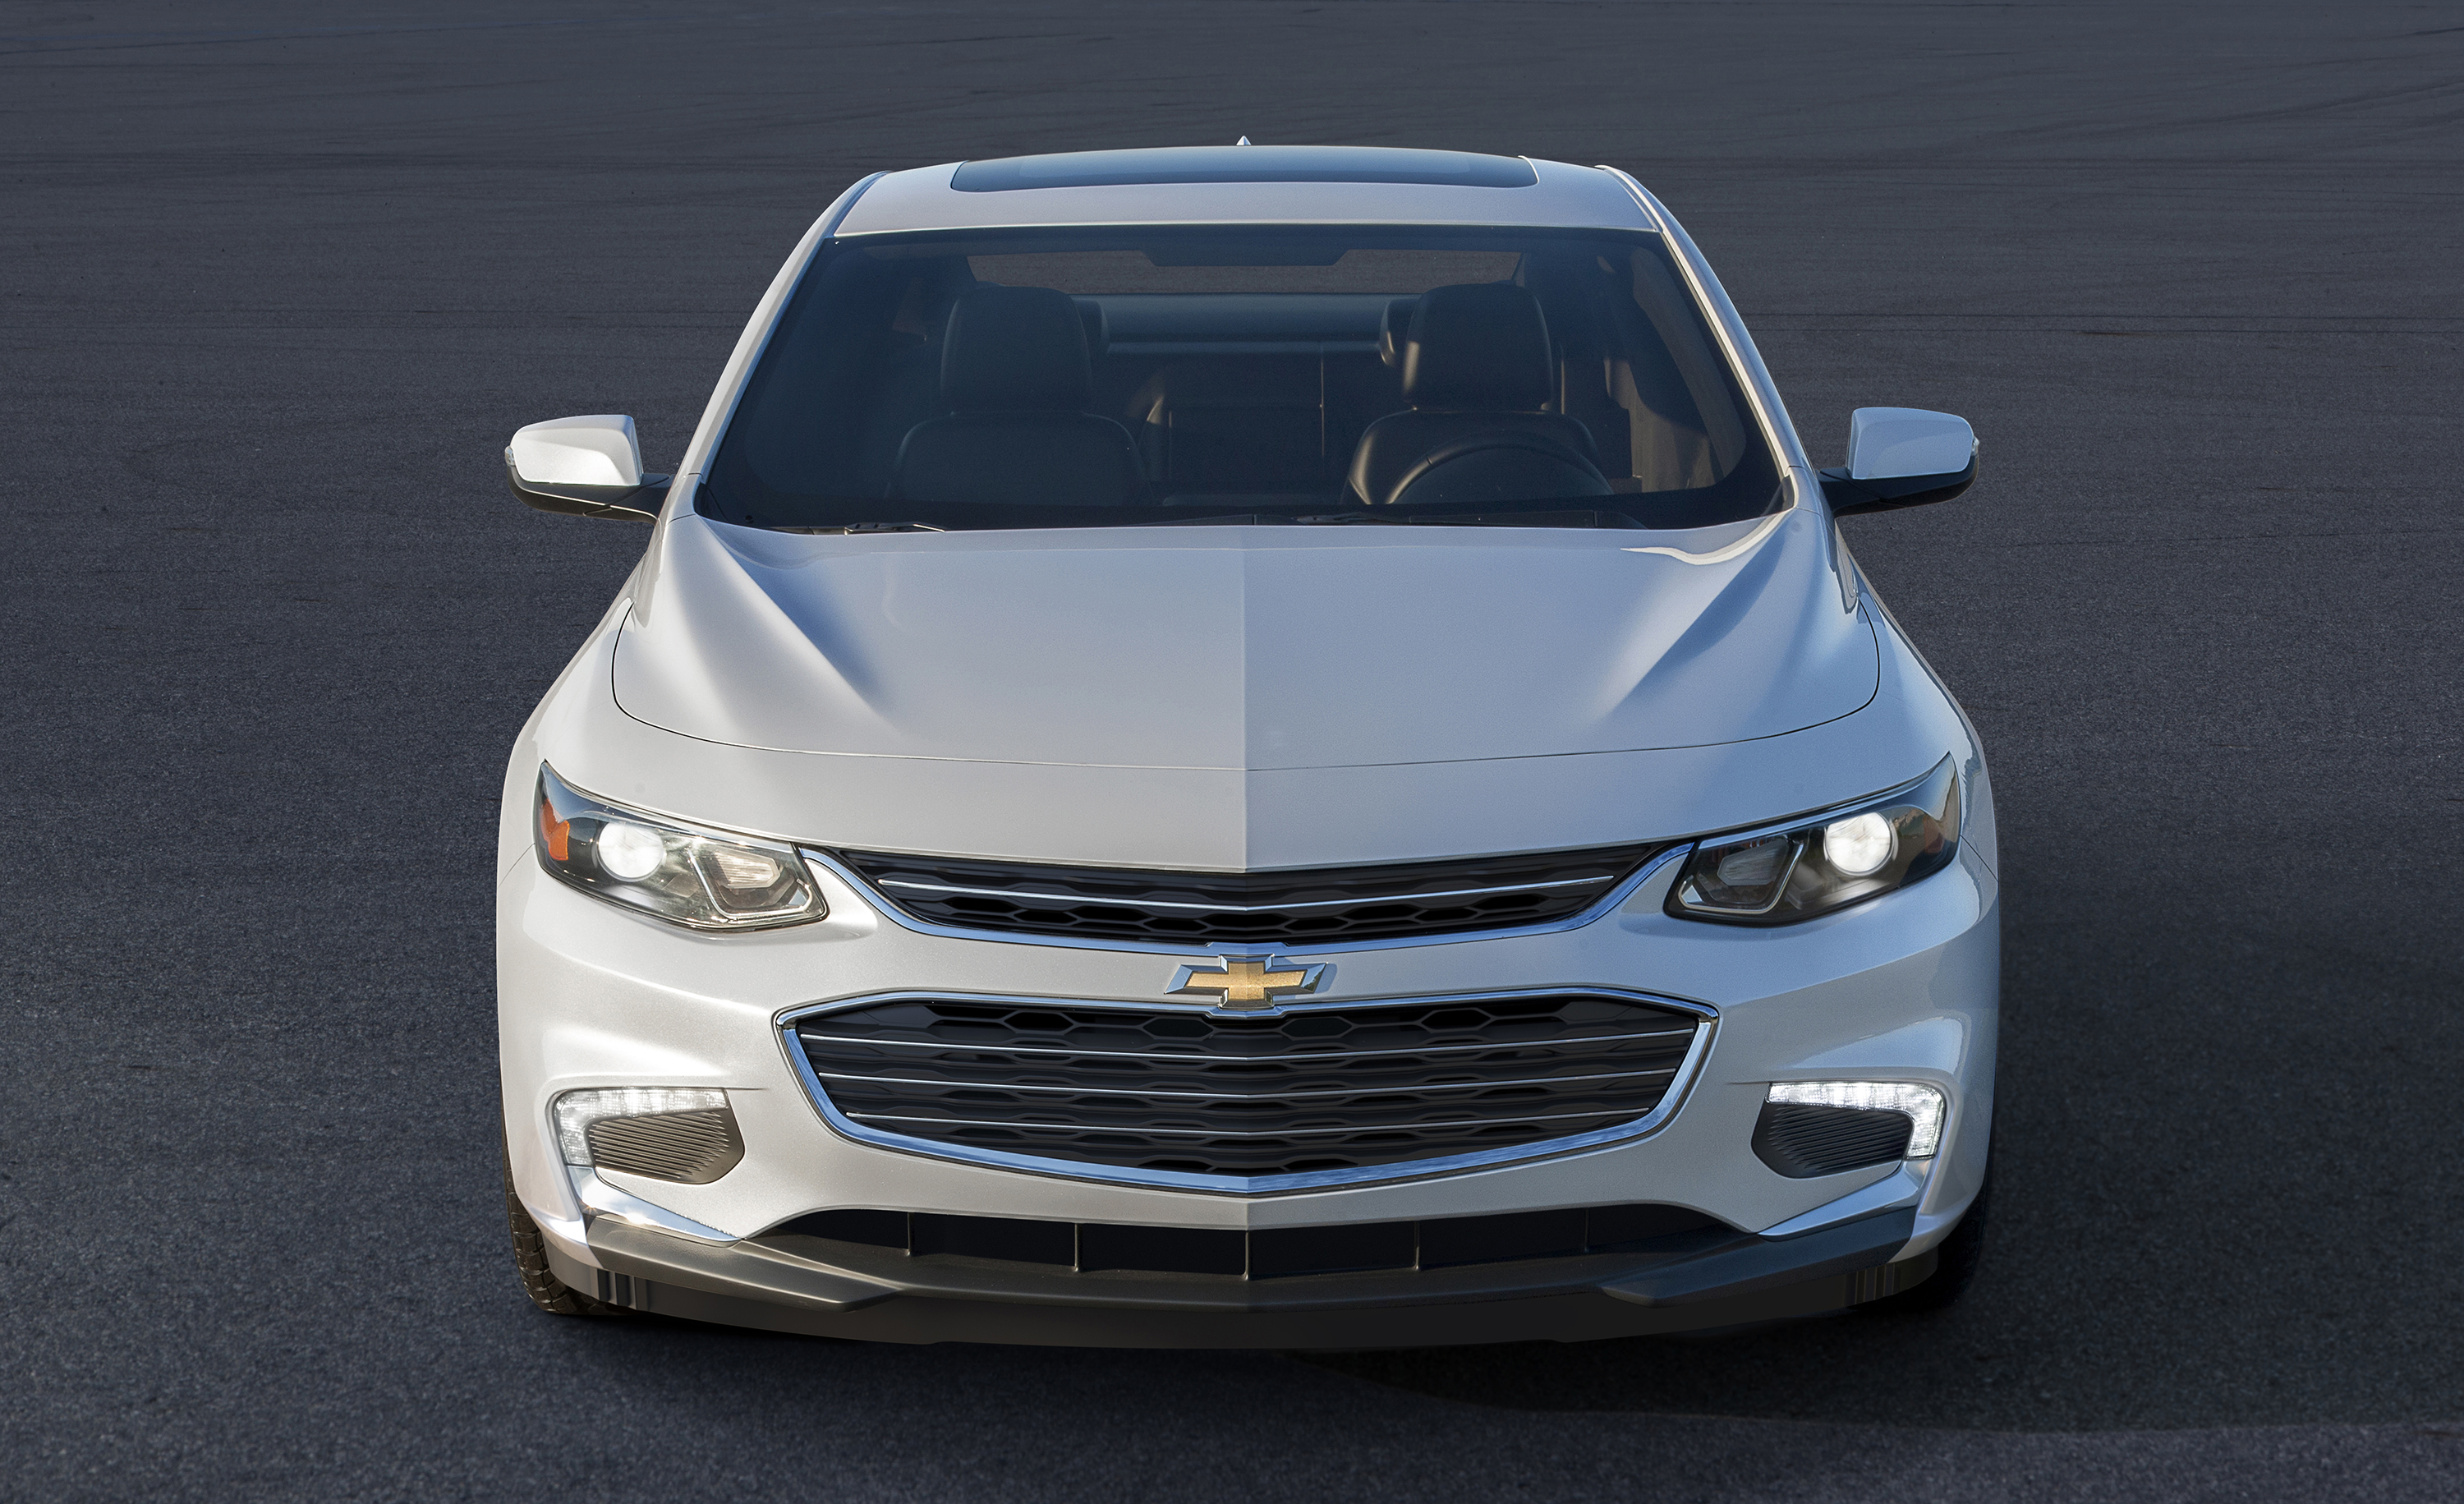 2016 Chevrolet Malibu Lost 300 Lbs Through Hs Steel Gm Calls It Lightest In Cl Repairer Driven Newsrepairer News